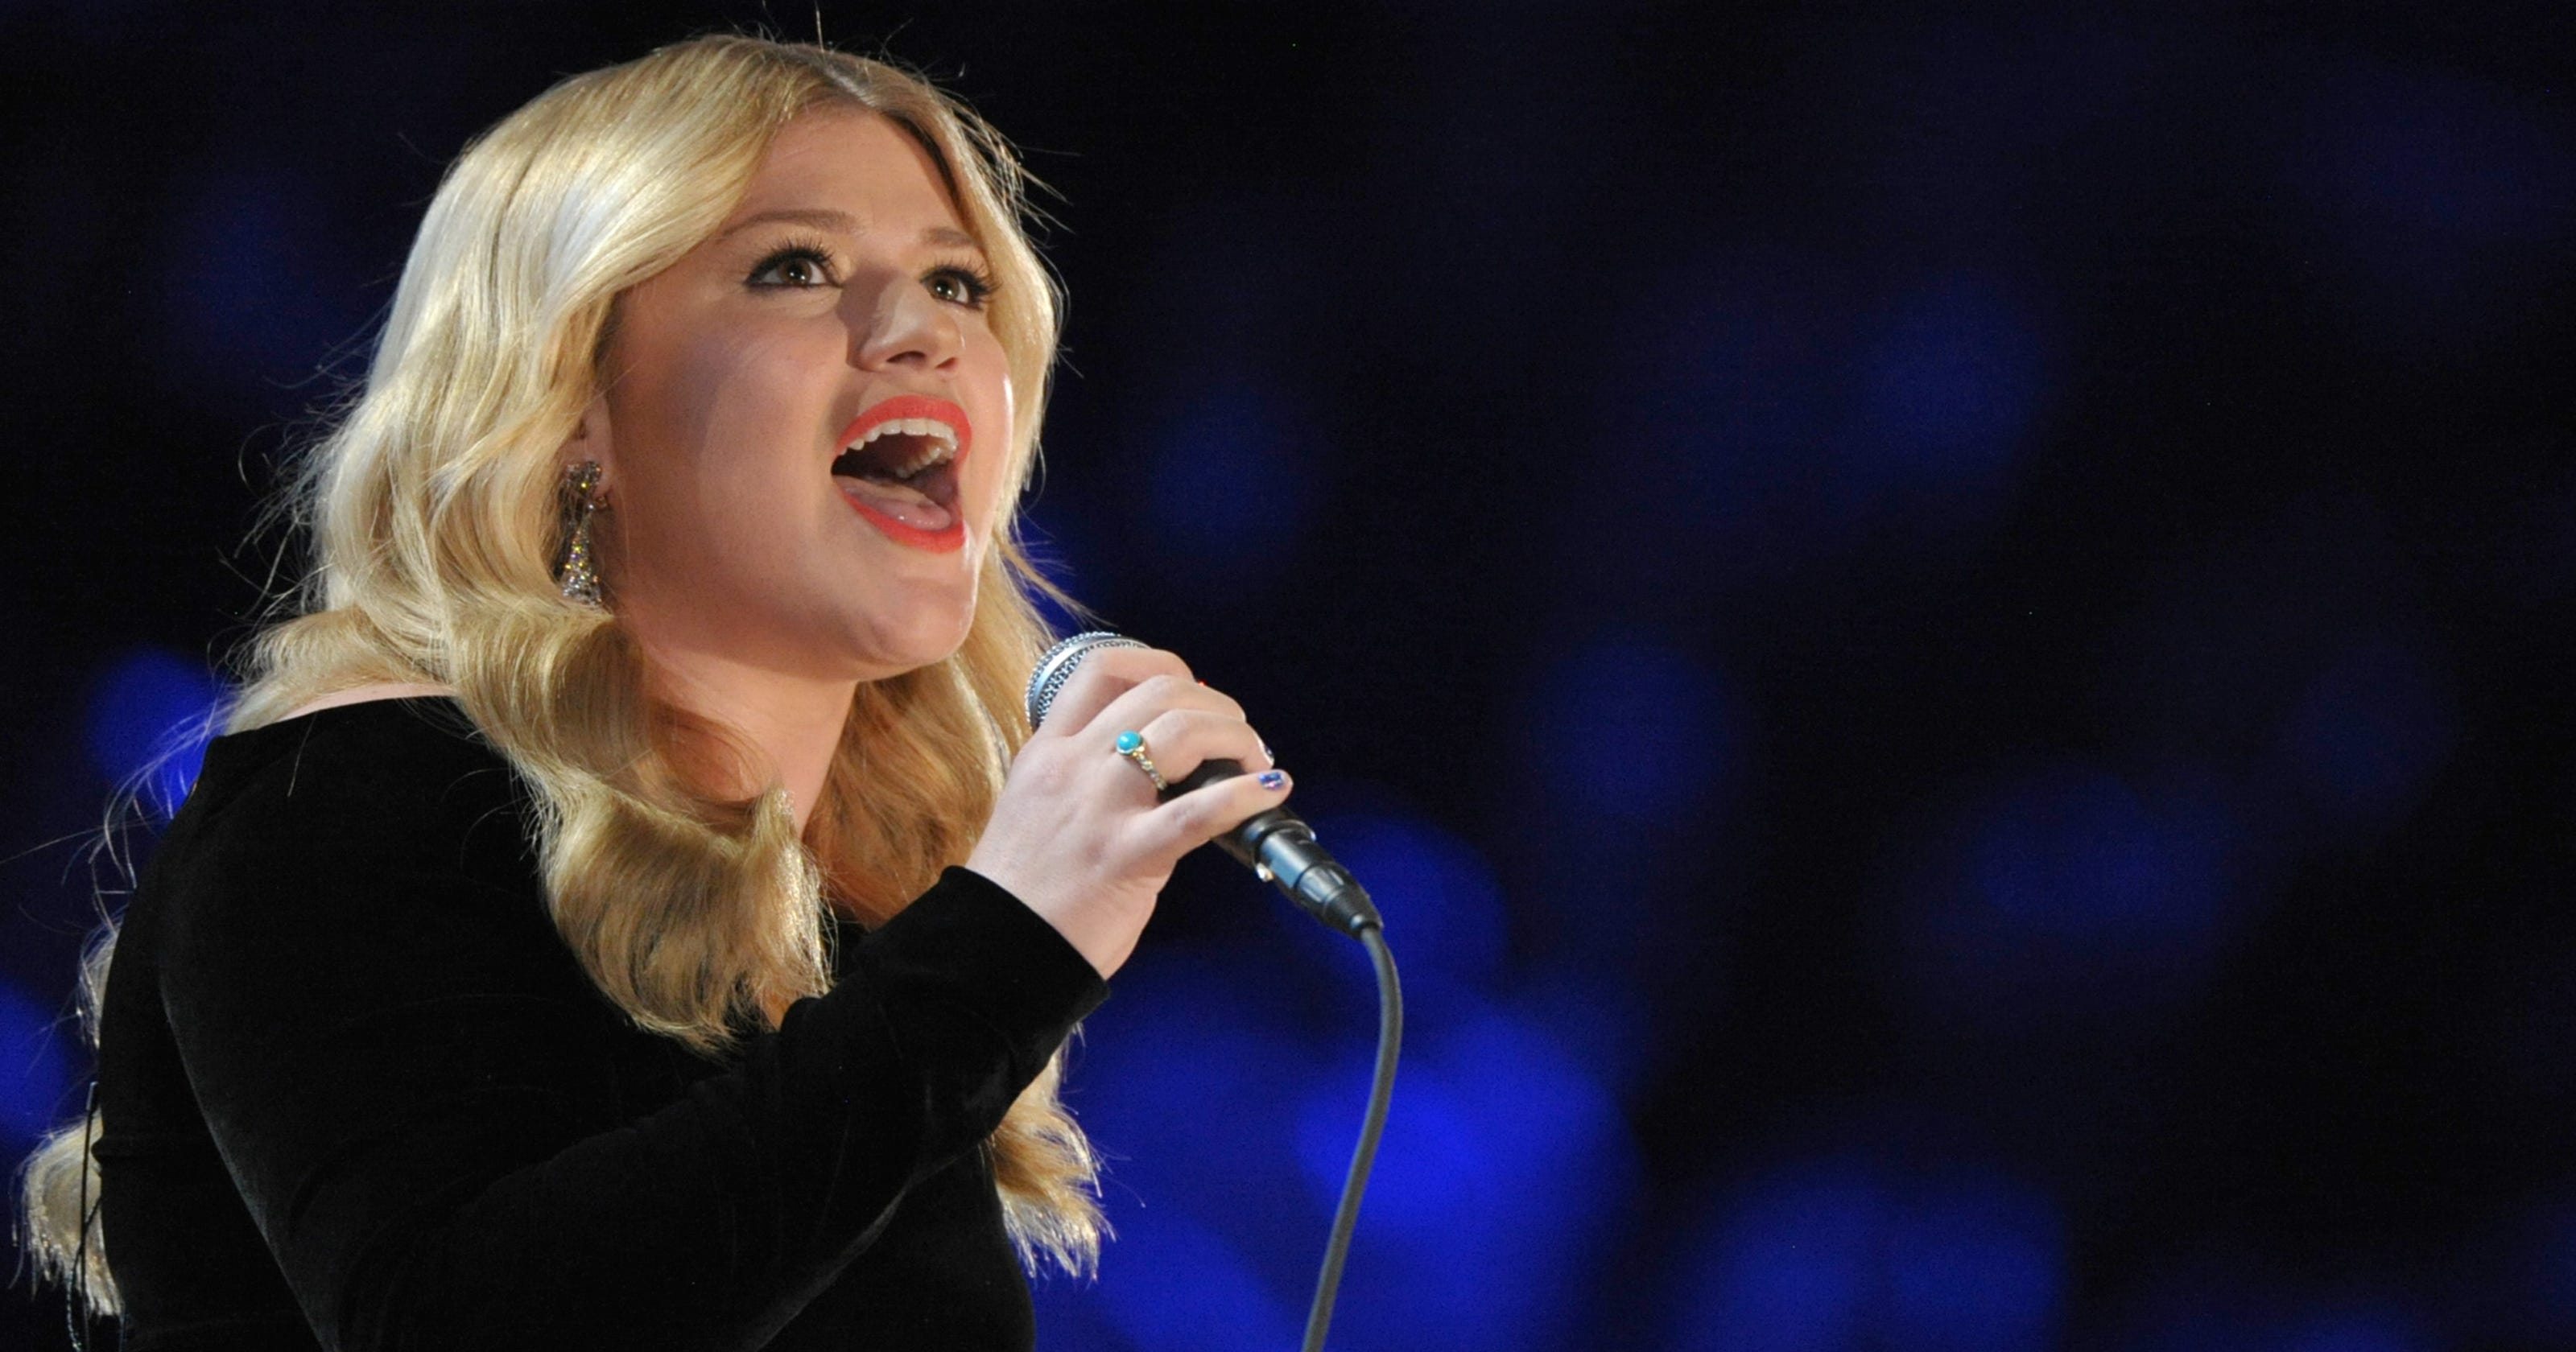 Kelly Clarkson is \'Wrapped\' in red, but feeling green